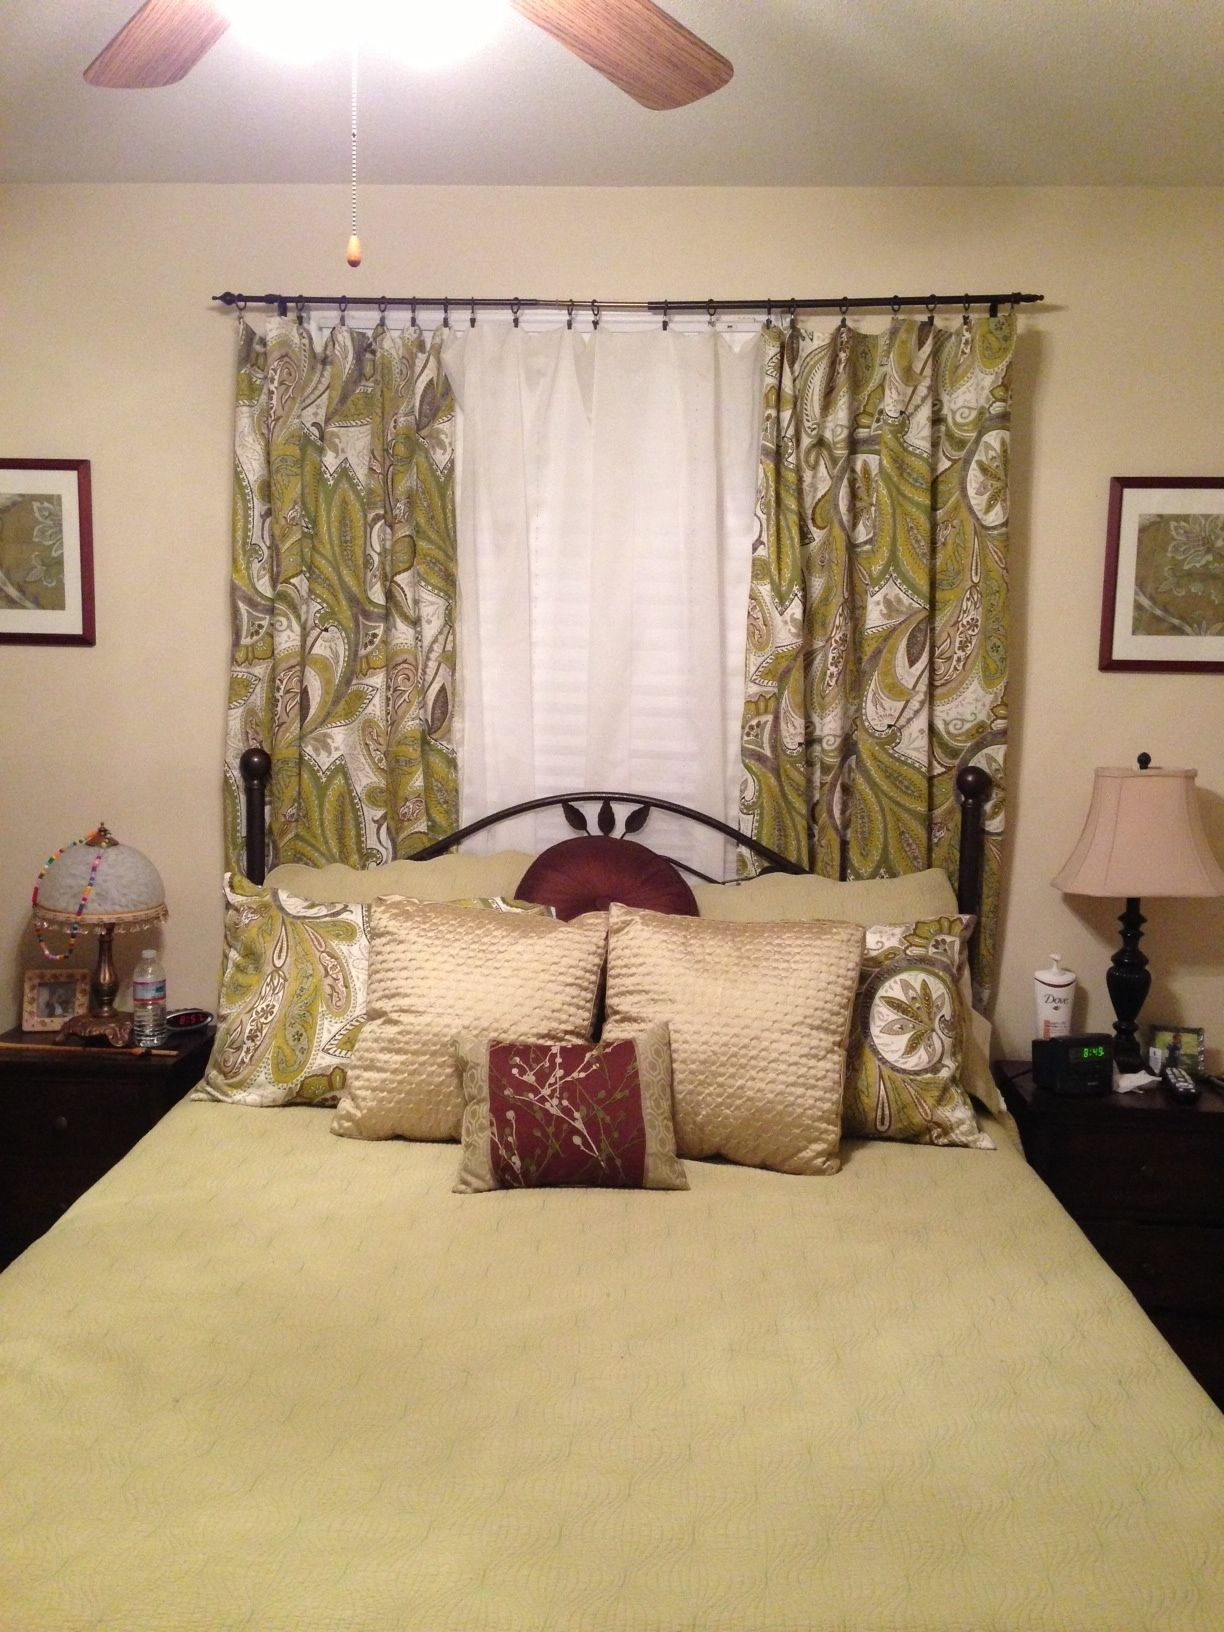 Window side bed design  bedroom needed a punch of color had my mom make curtain panels out